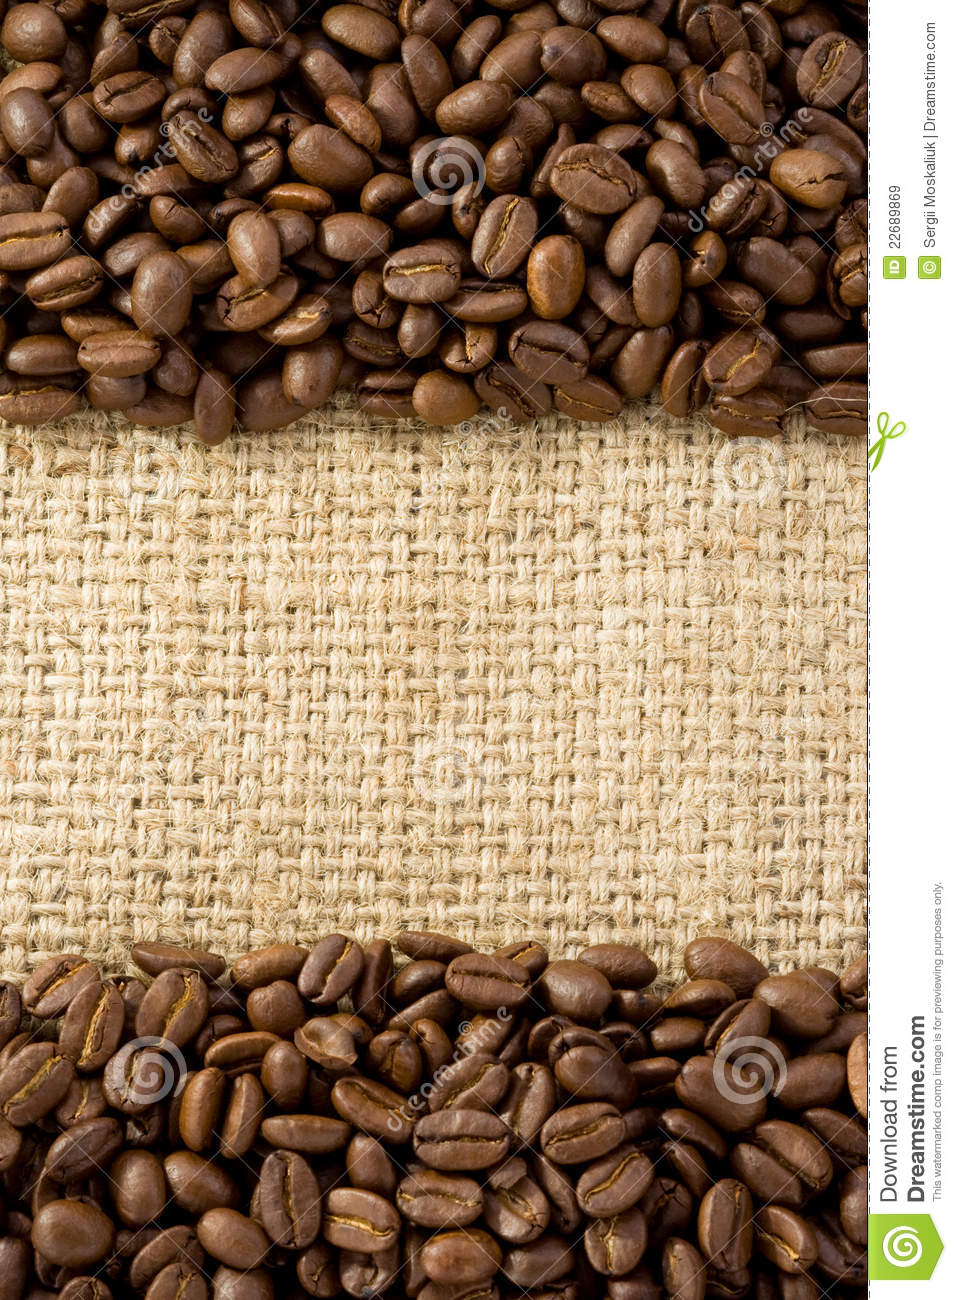 coffee beans on sack burlap royalty free stock images image 22689869. Black Bedroom Furniture Sets. Home Design Ideas